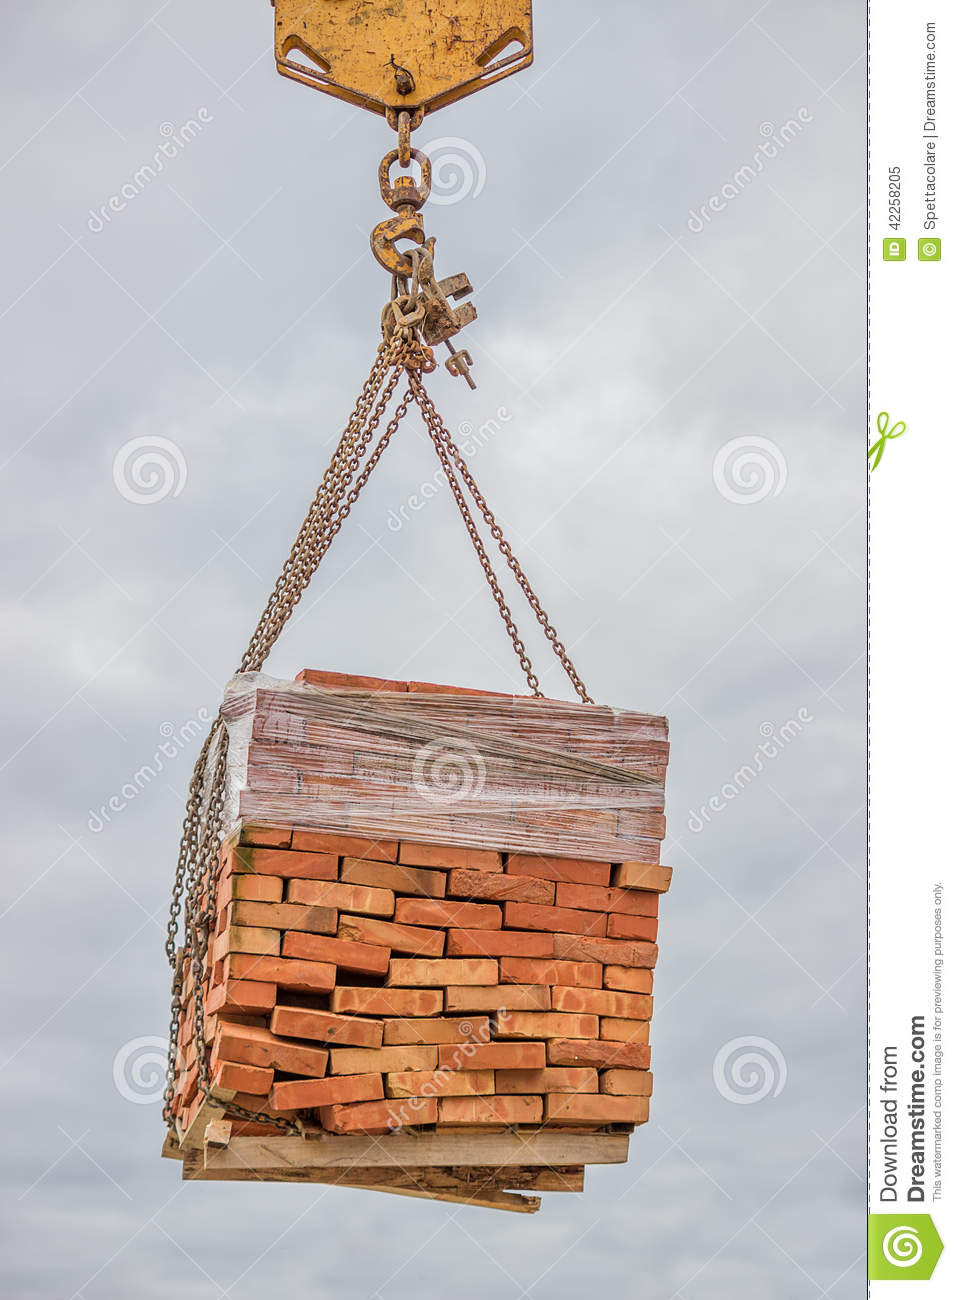 Orange Solid Clay Brick On Pallet Lifting Stock Image